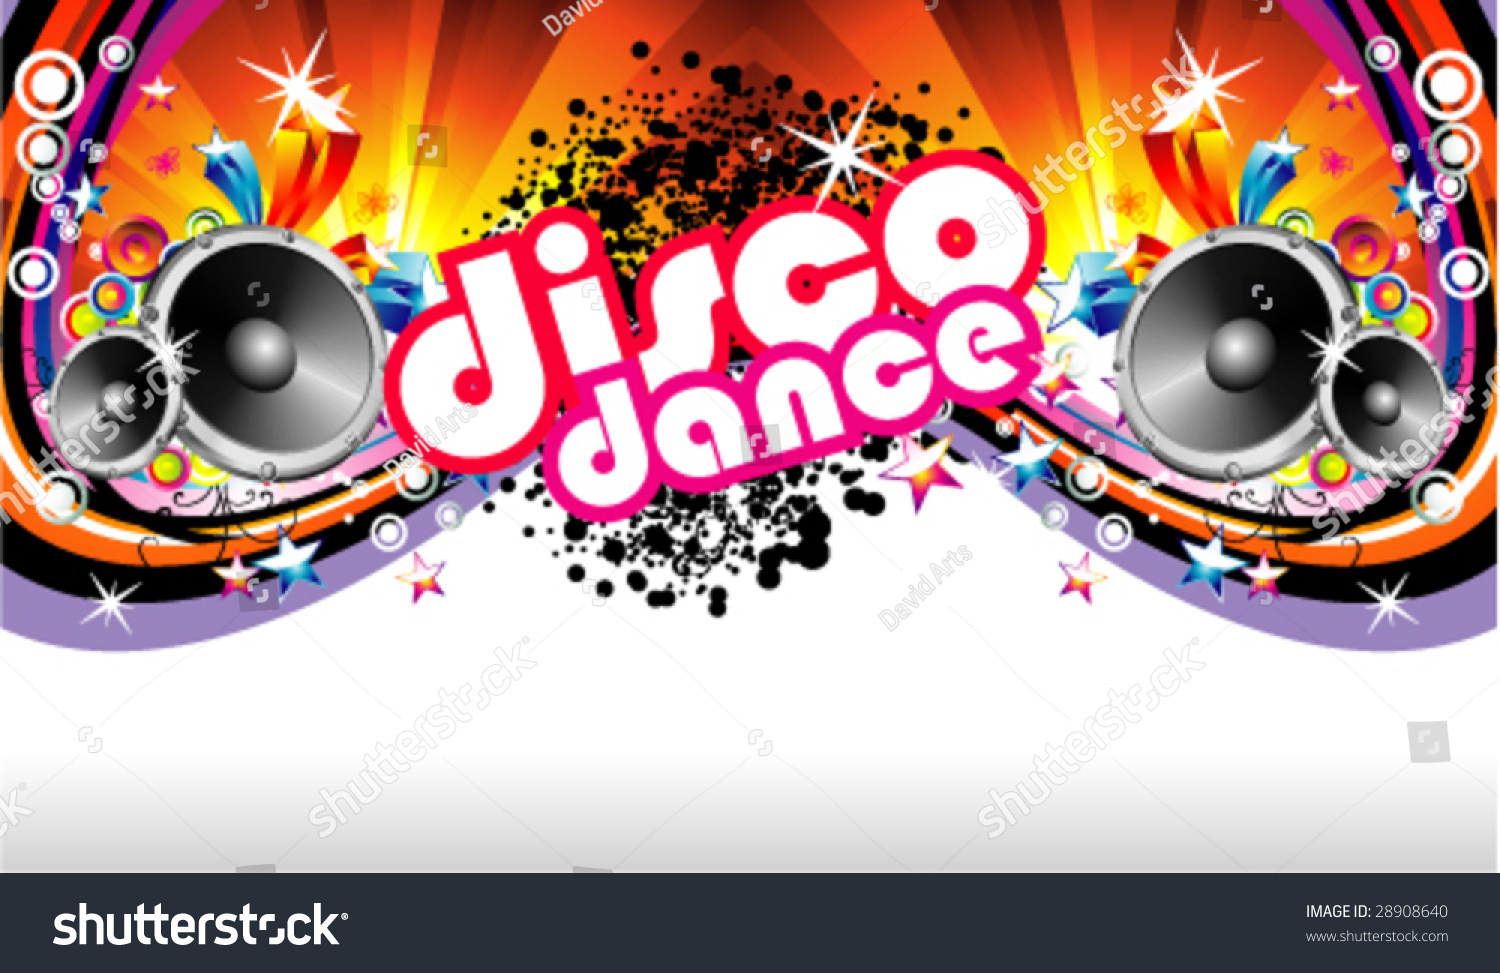 Vector Disco Dance Music Colorful Background Stock Vector ...